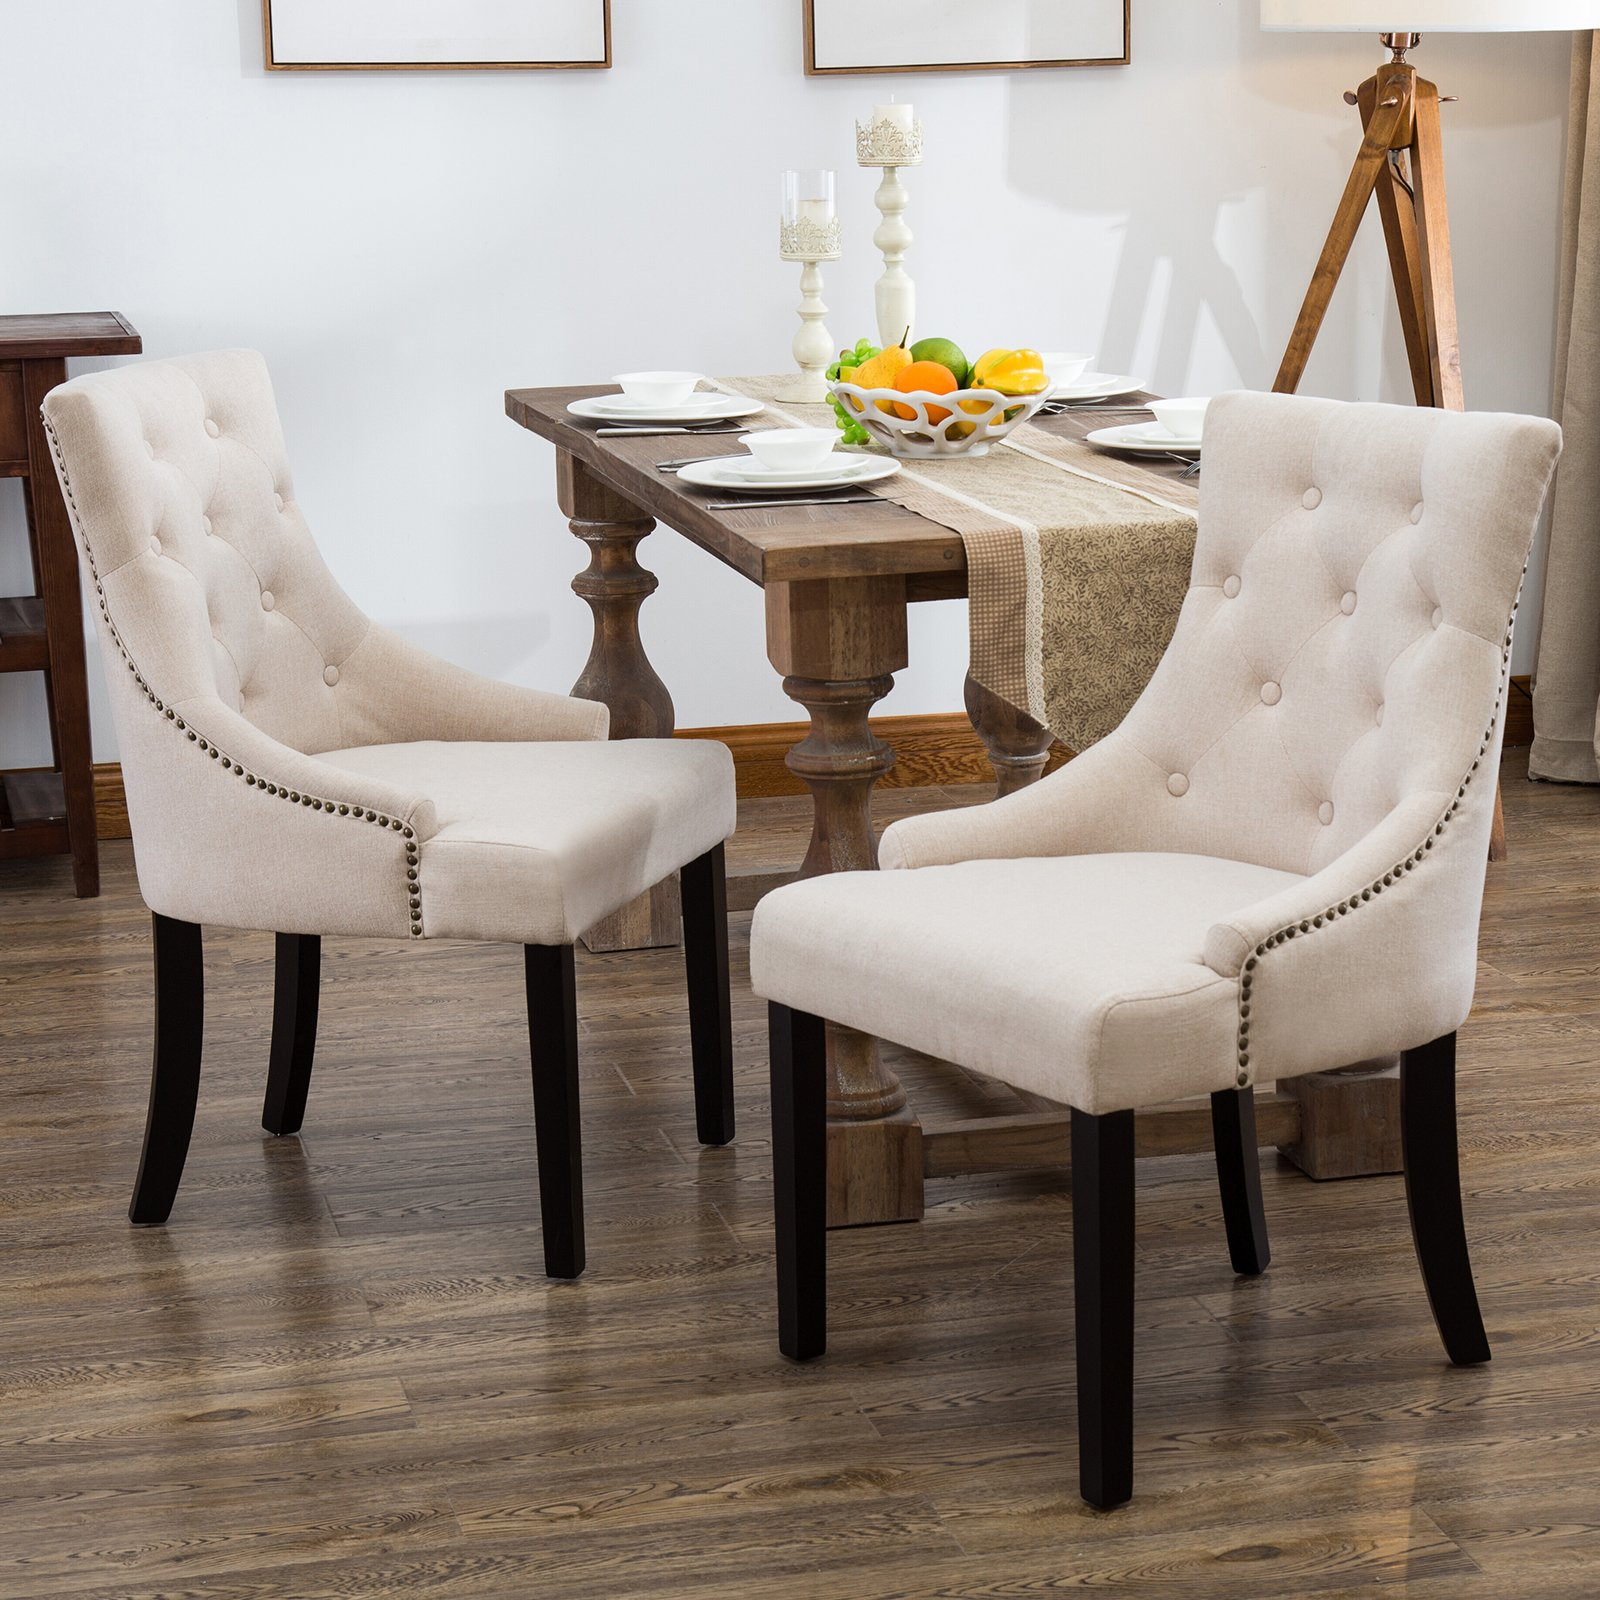 Dining Room Arm Chairs Upholstered: Upholstered Dining Room Arm Chairs